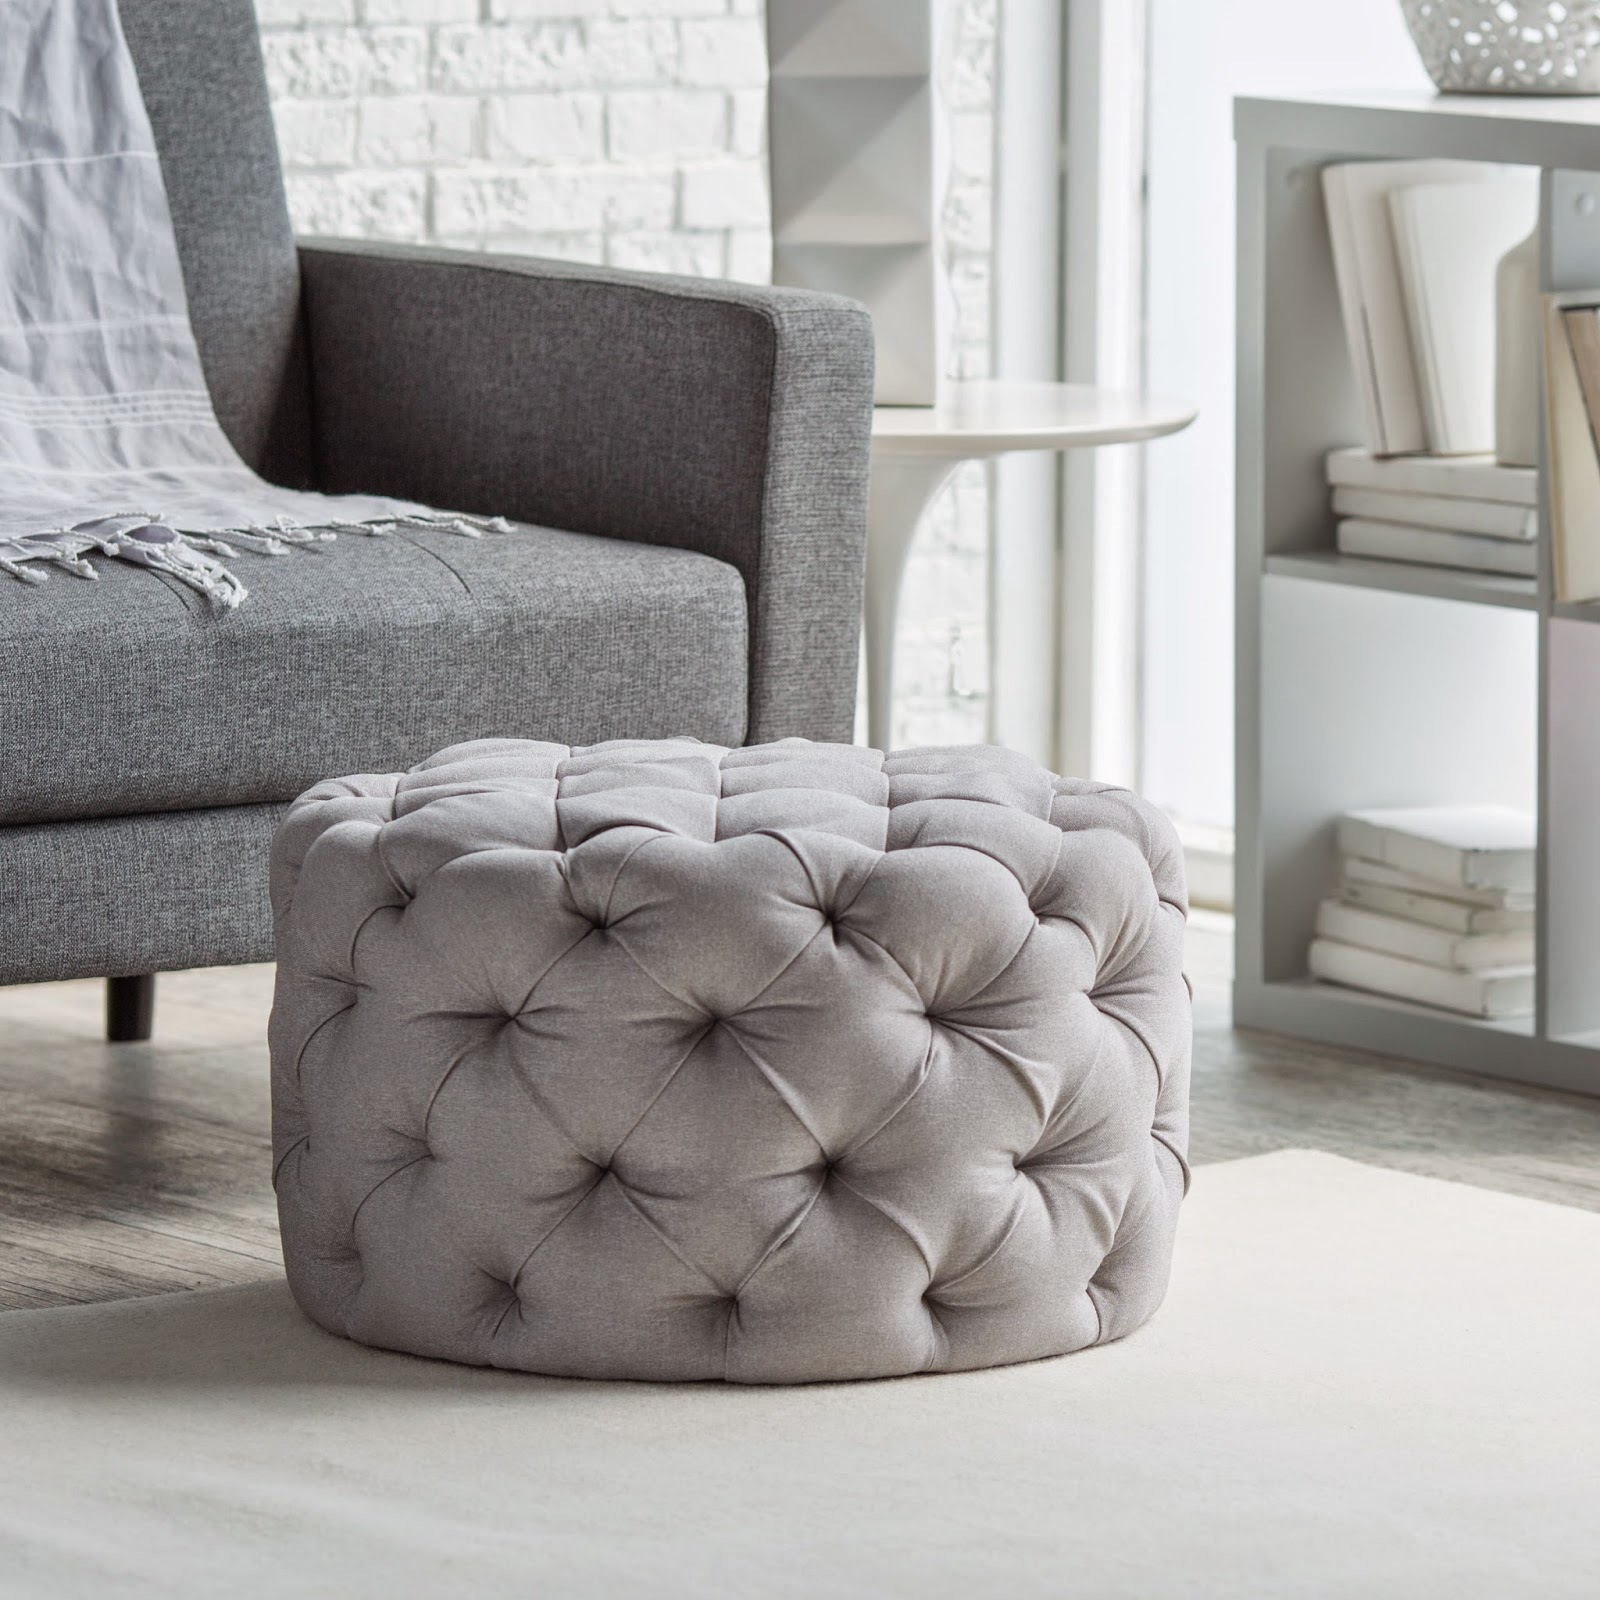 Mix and Chic: Fabulous finds- Round tufted ottoman for ...